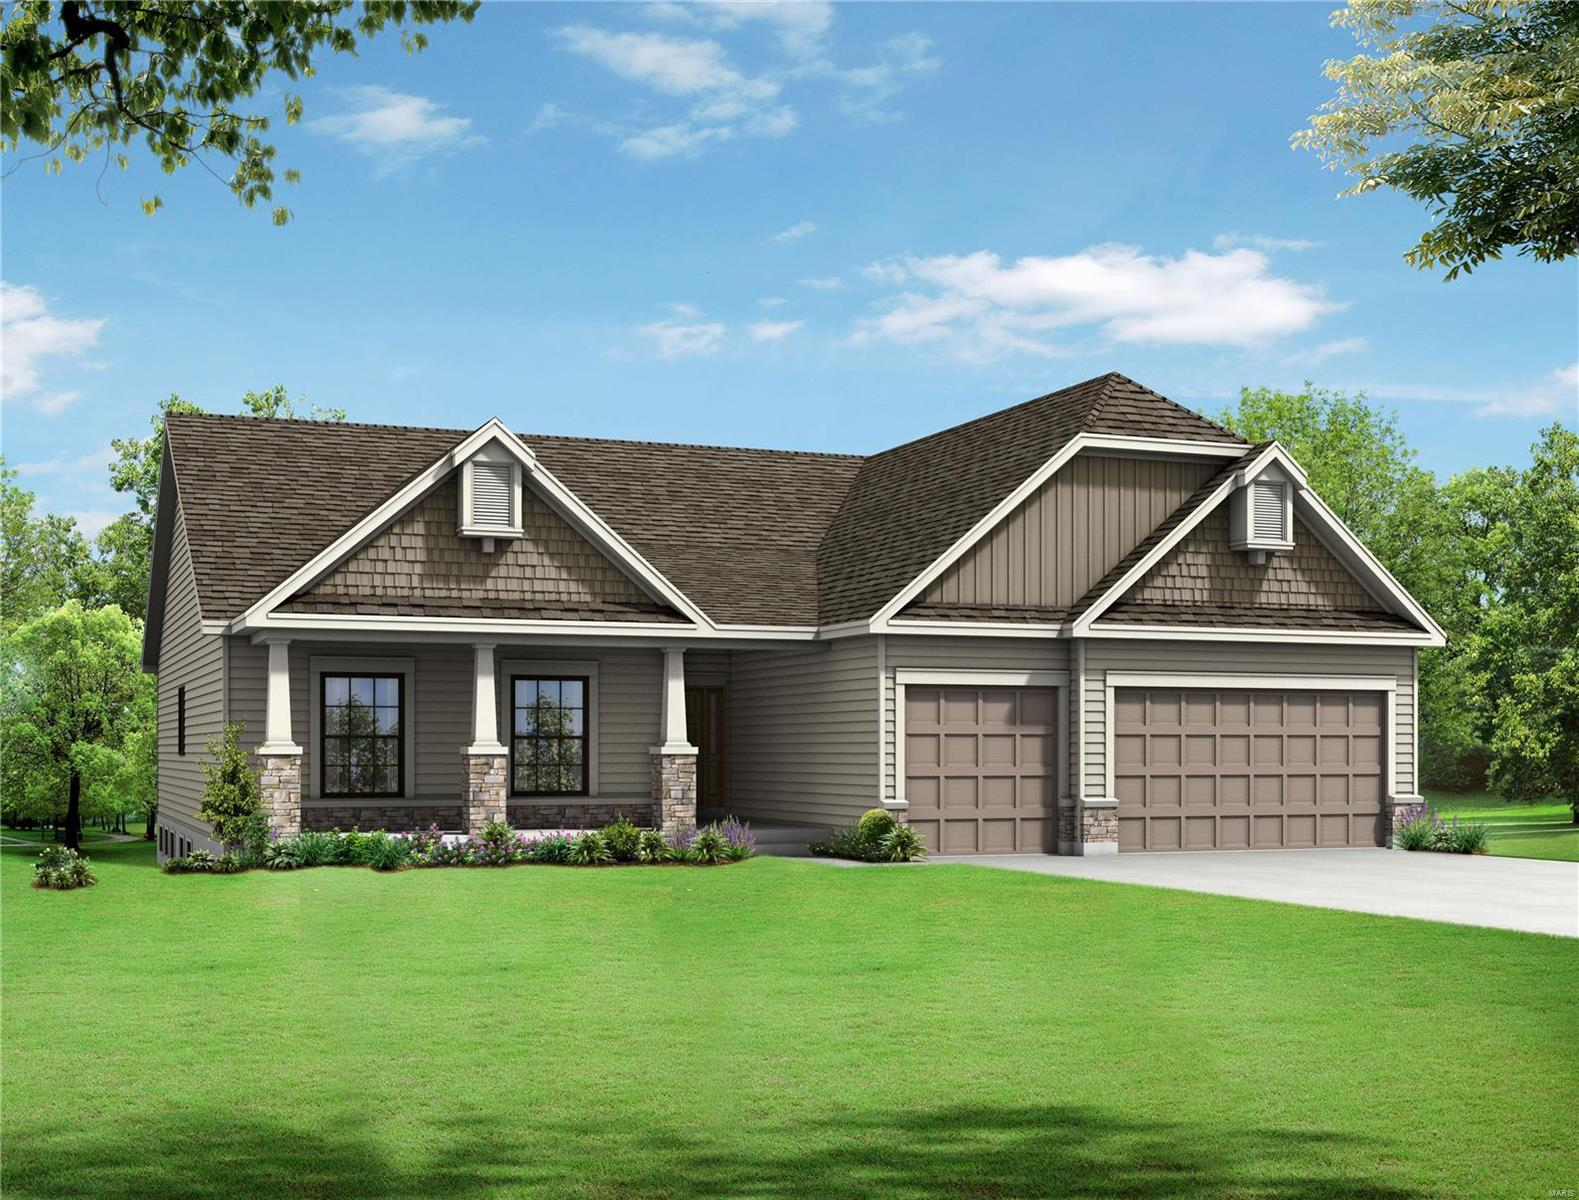 622 Brent Alan Way Property Photo - Manchester, MO real estate listing